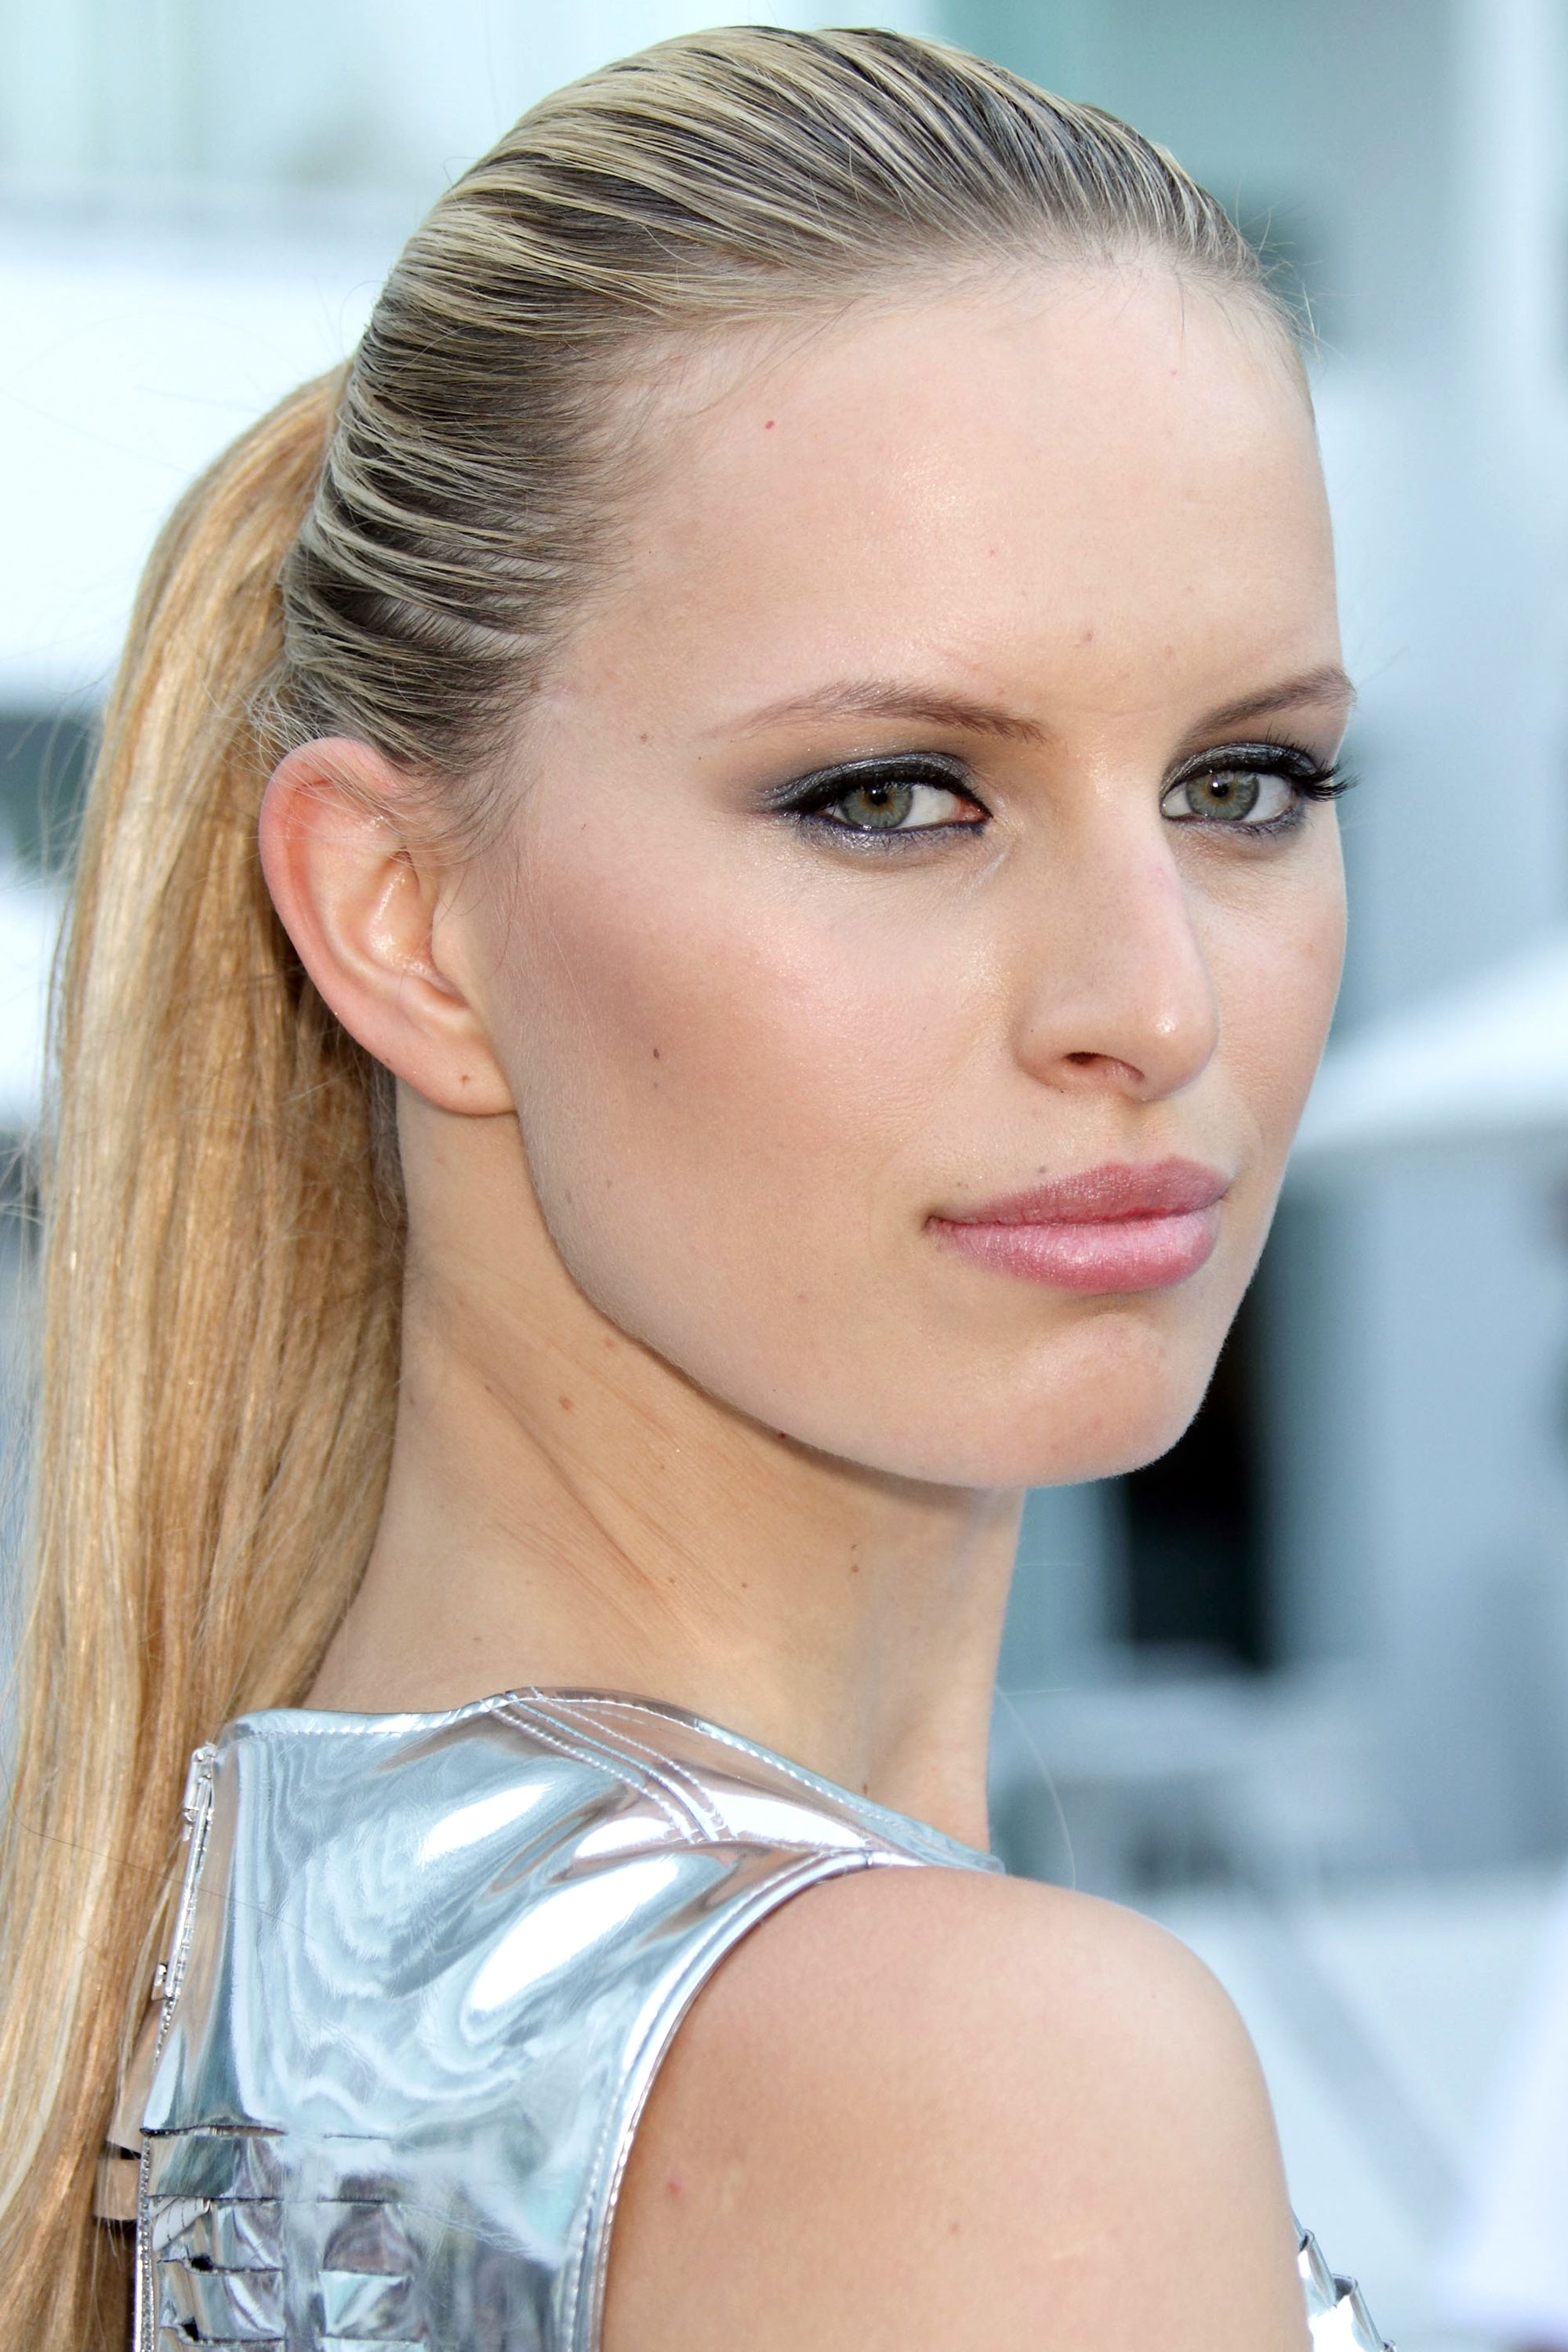 20 New Ways To Wear A Ponytail – Best Celebrity Ponytails Of 2017 Regarding Preferred Pebbles Pony Hairstyles (View 2 of 20)